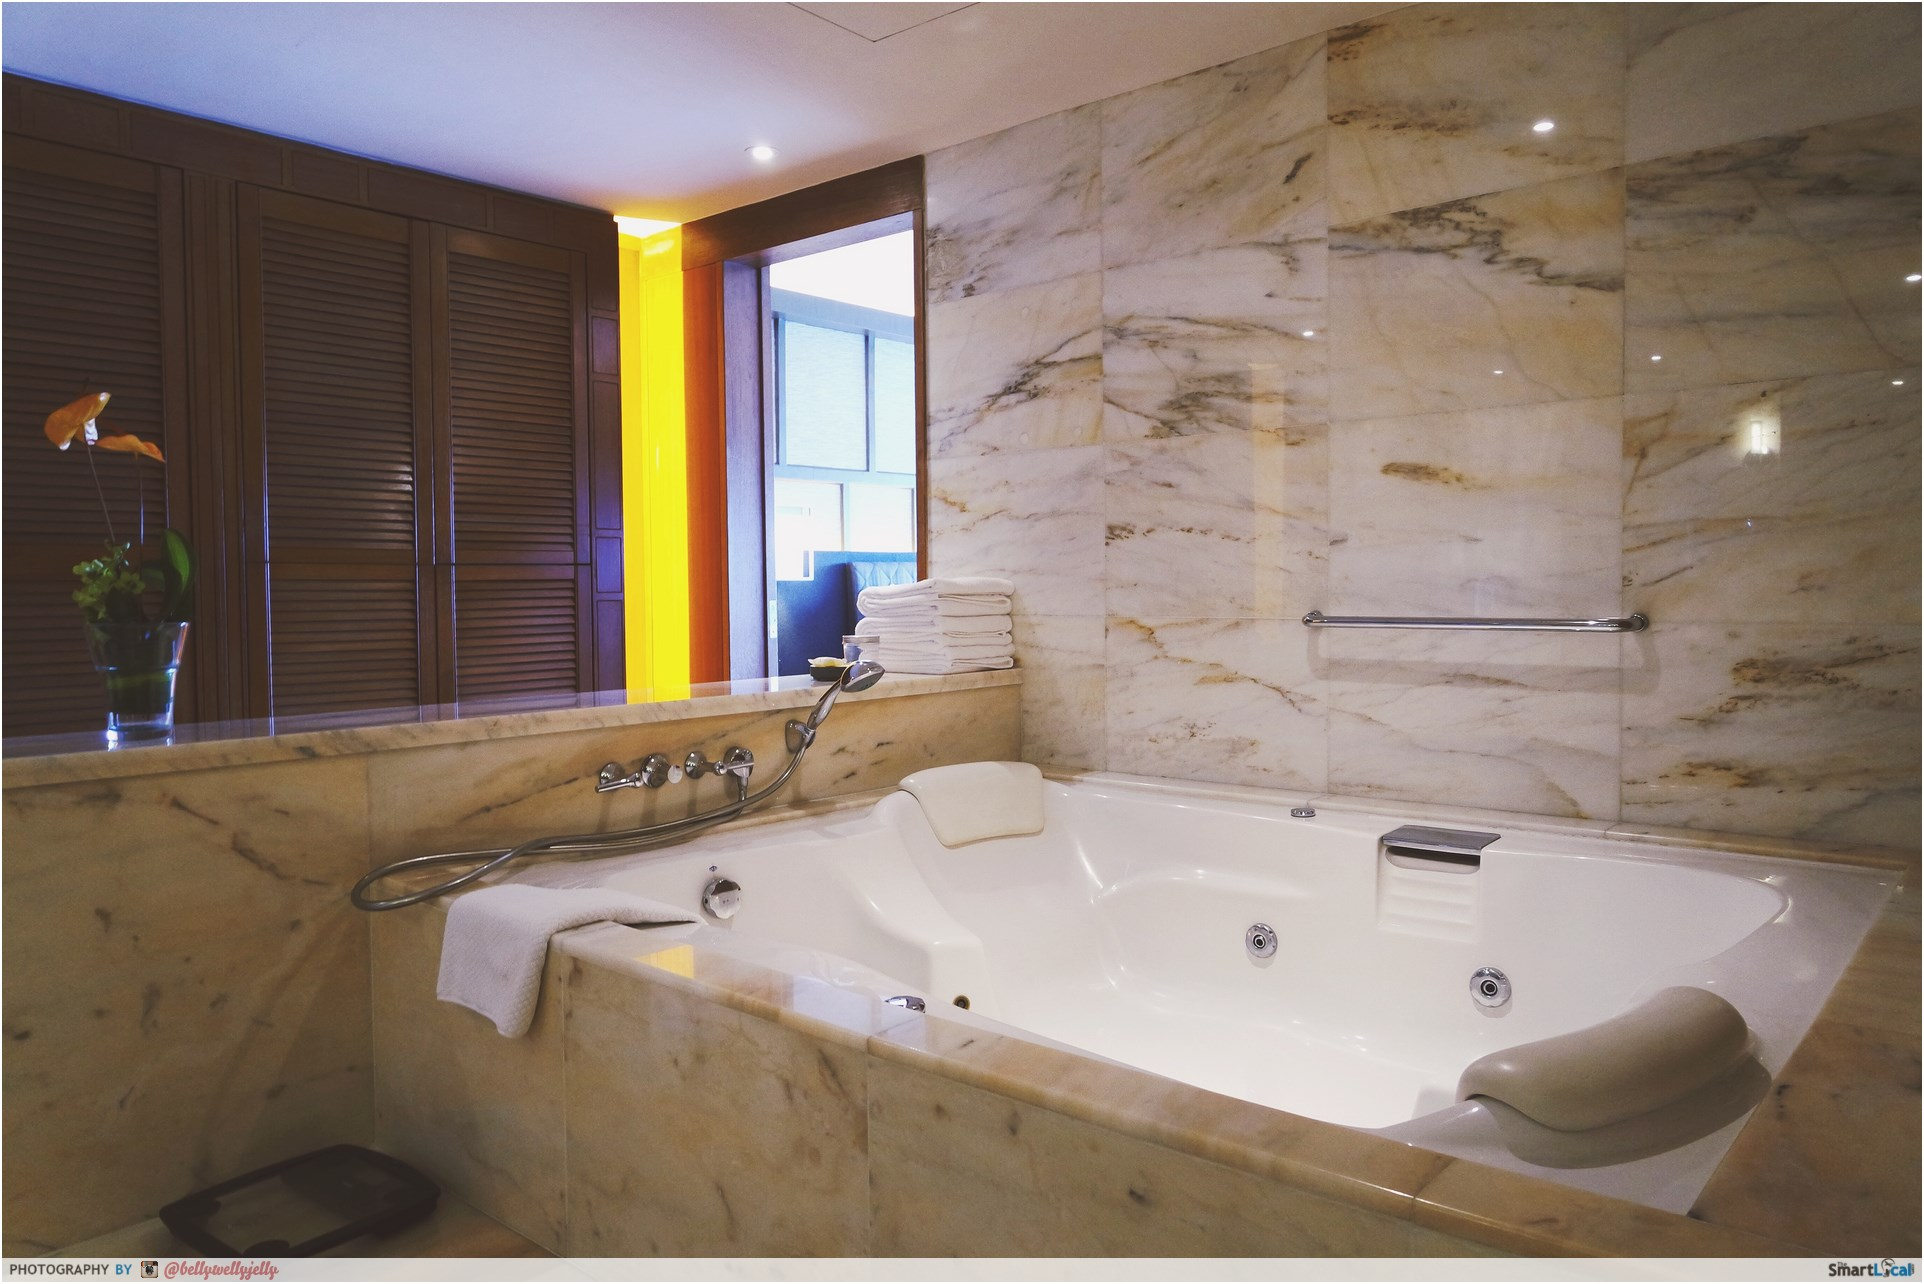 10 epic singapore hotel rooms you must see to believe for How big is a bathtub